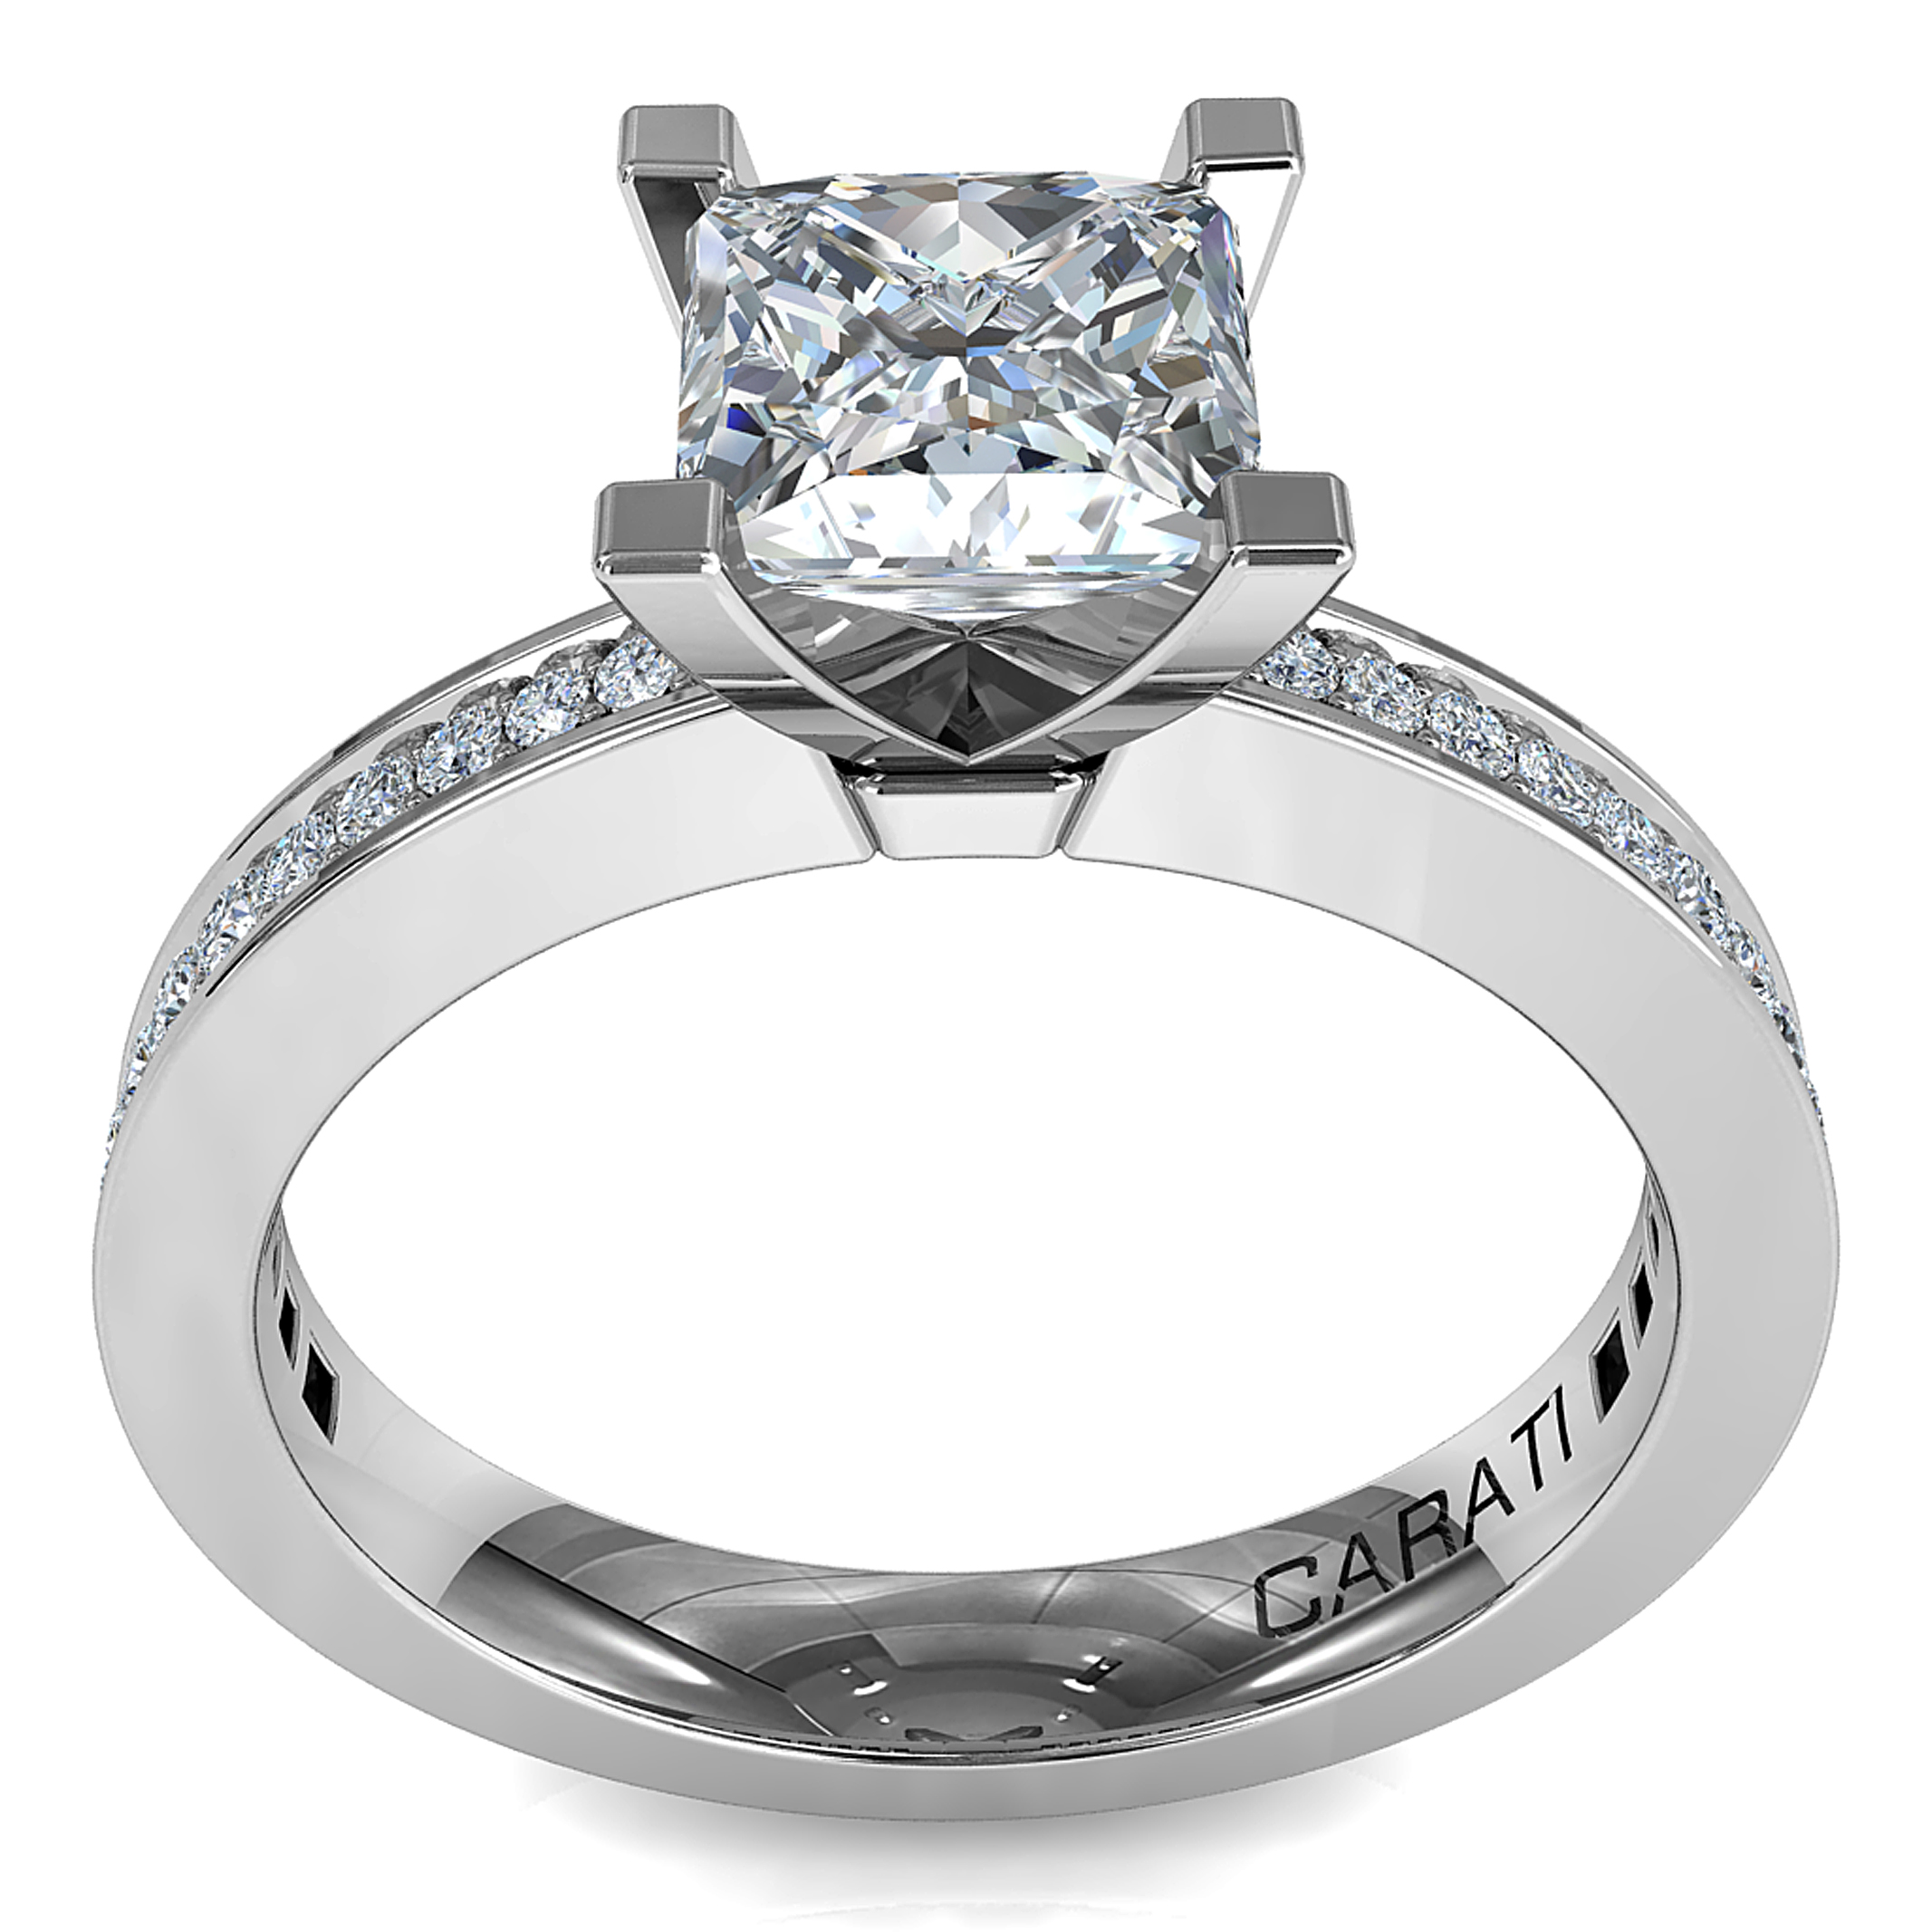 Princess Cut Solitaire Diamond Engagement Ring, 4 Square Claws on a Tapered Bead Set Band.